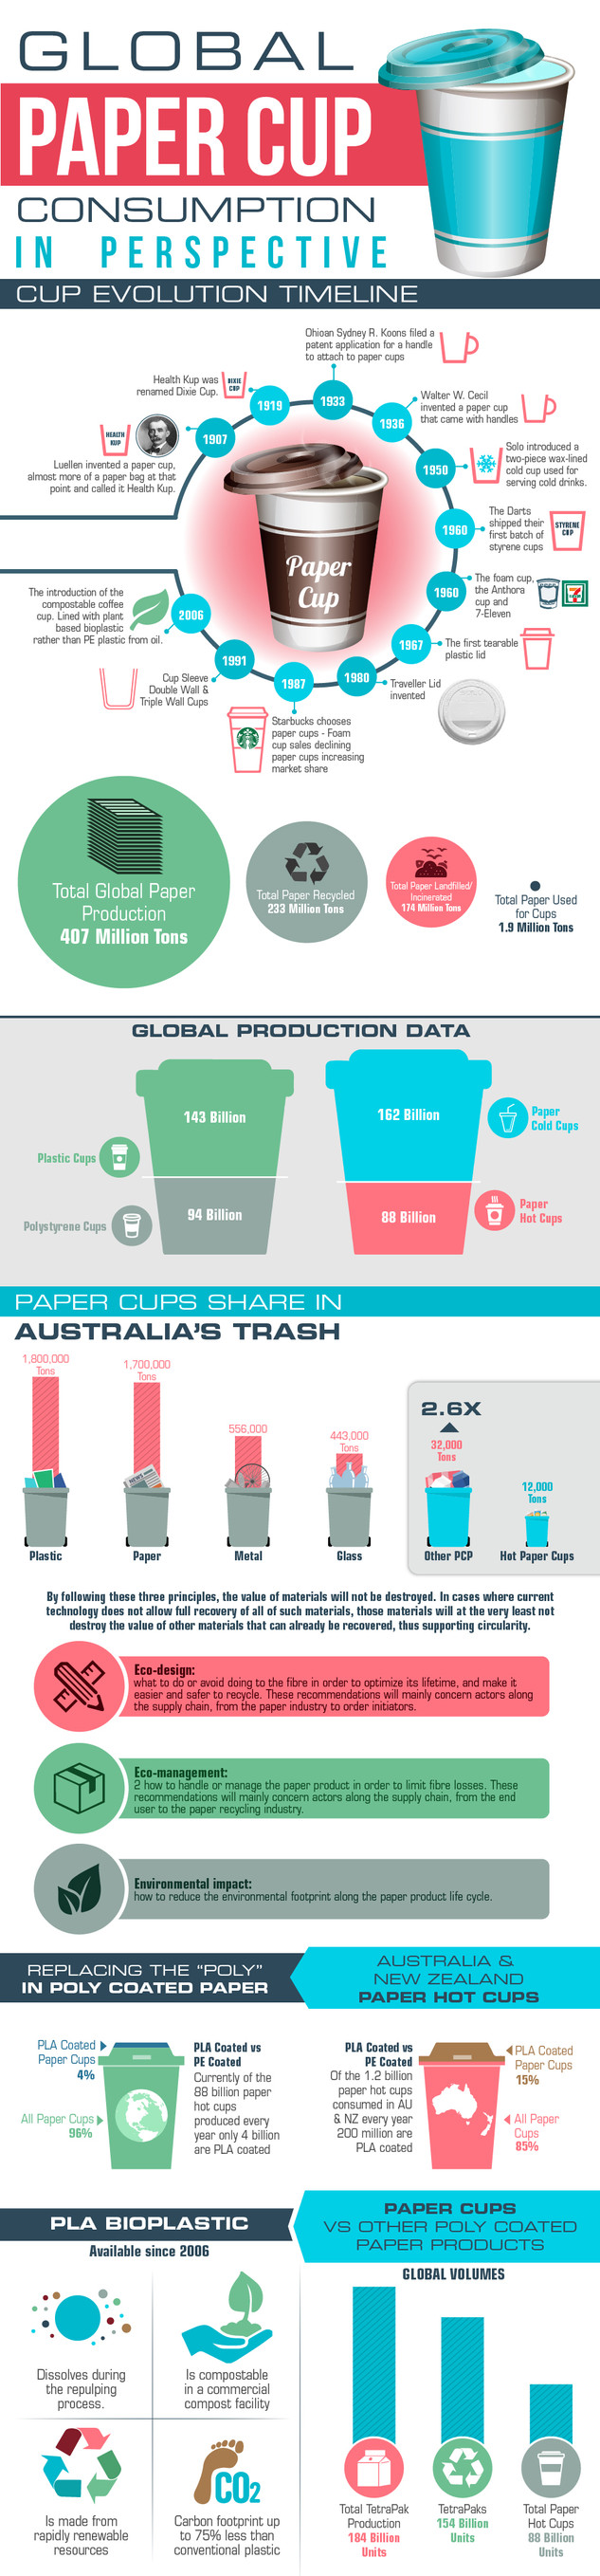 Global Paper Cup Consumption in Perspective